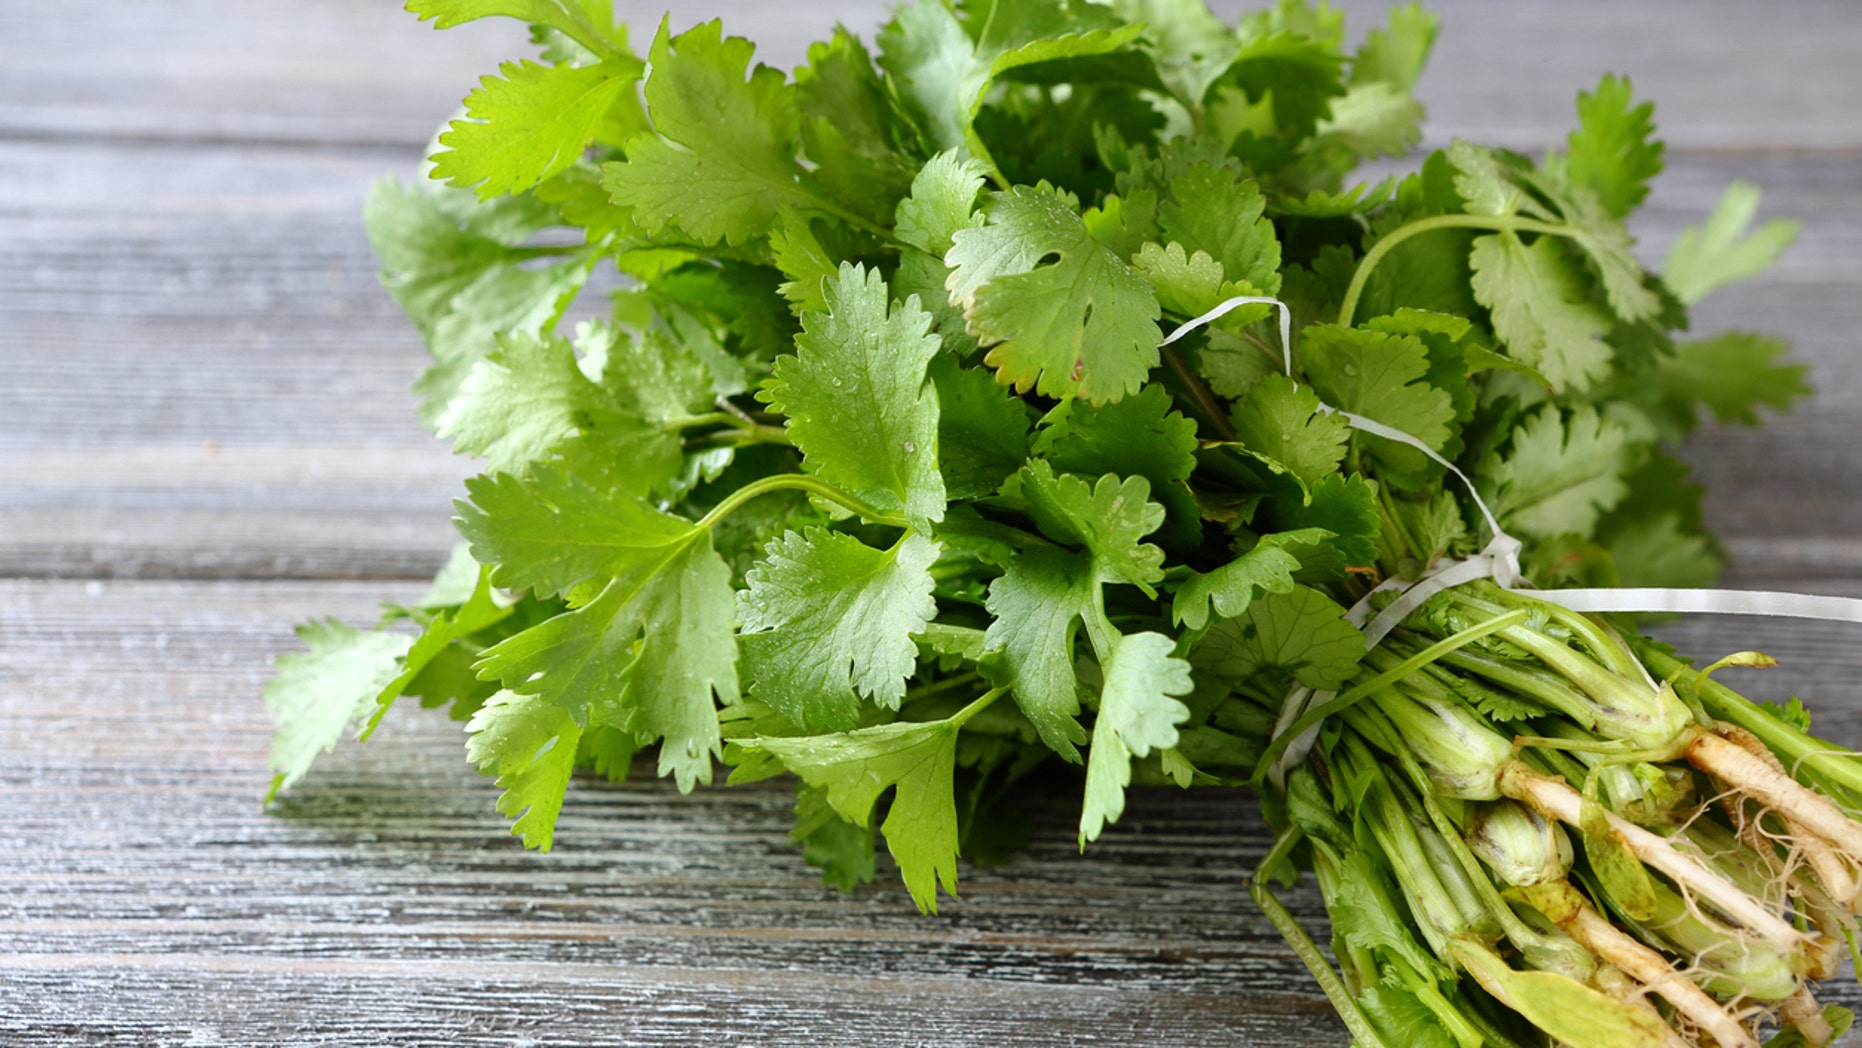 Cilantro may be one of the most polarizing herbs.